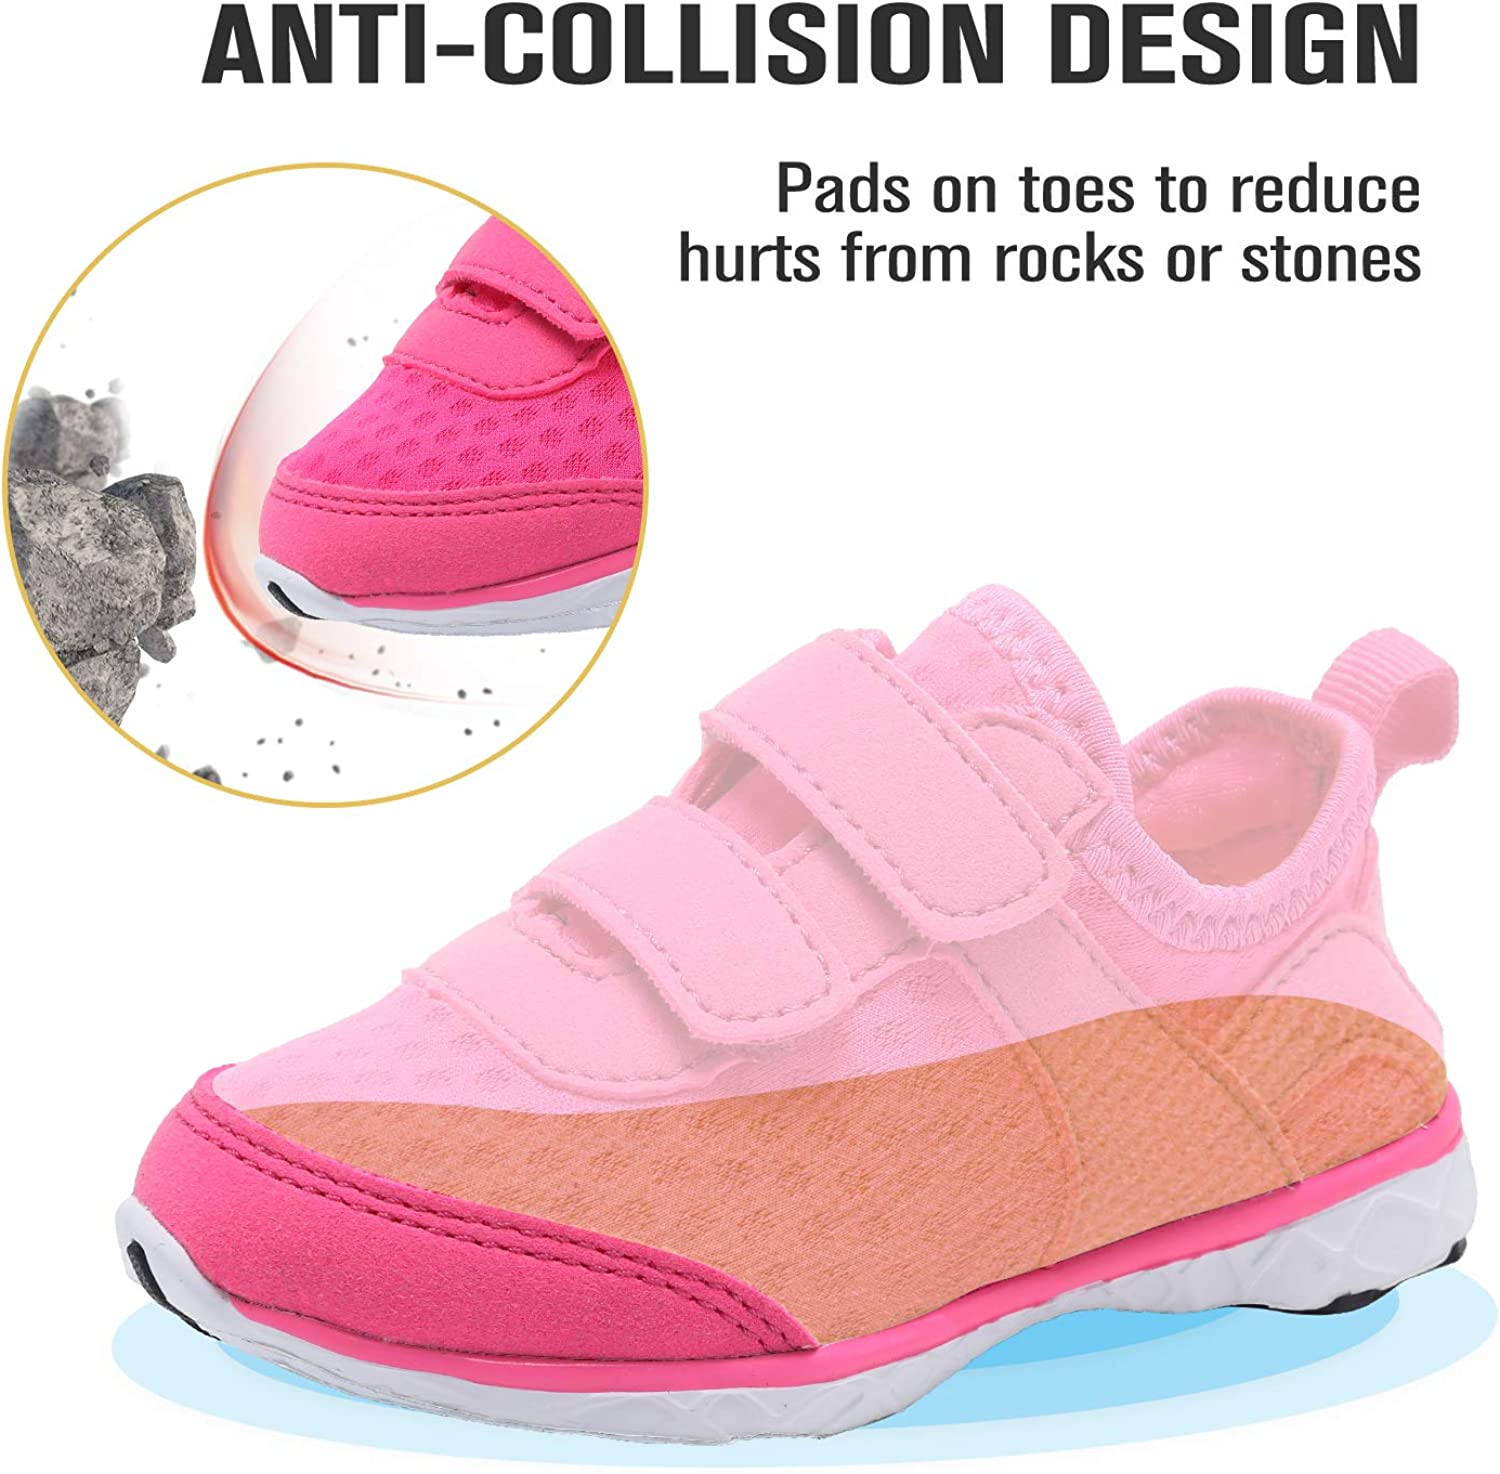 CIOR Boys /& Girls Water Shoes Aqua Shoes Swim Shoes Athletic Sneakers Lightweight Sport Shoes Toddler//Little Kid//Big Kid